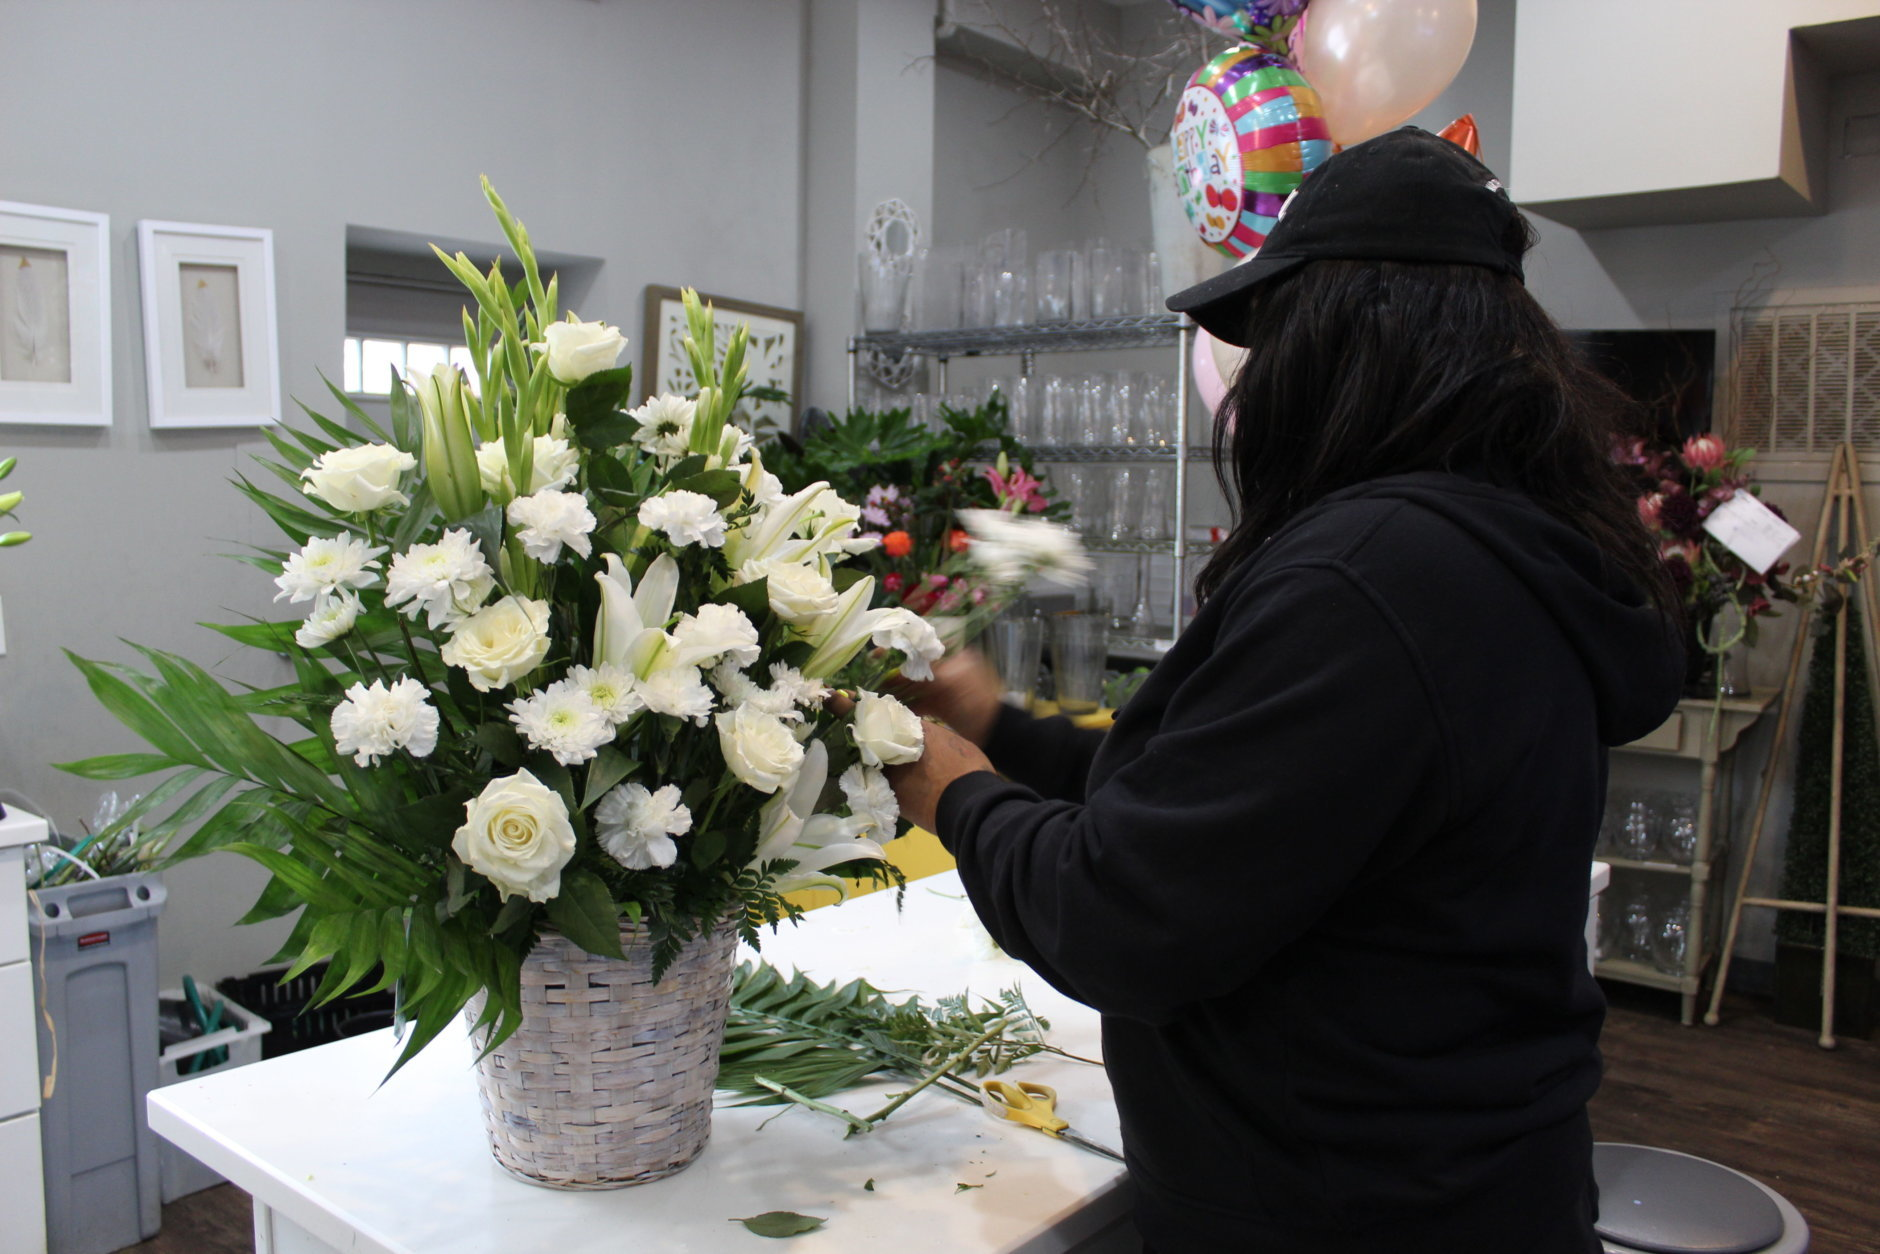 Lee's Flower and Card Shop is located on the corner of U street and 11st Street Northwest. The shop has been open  for nearly 75 years. (WTOP/Hallie Mellendorf)